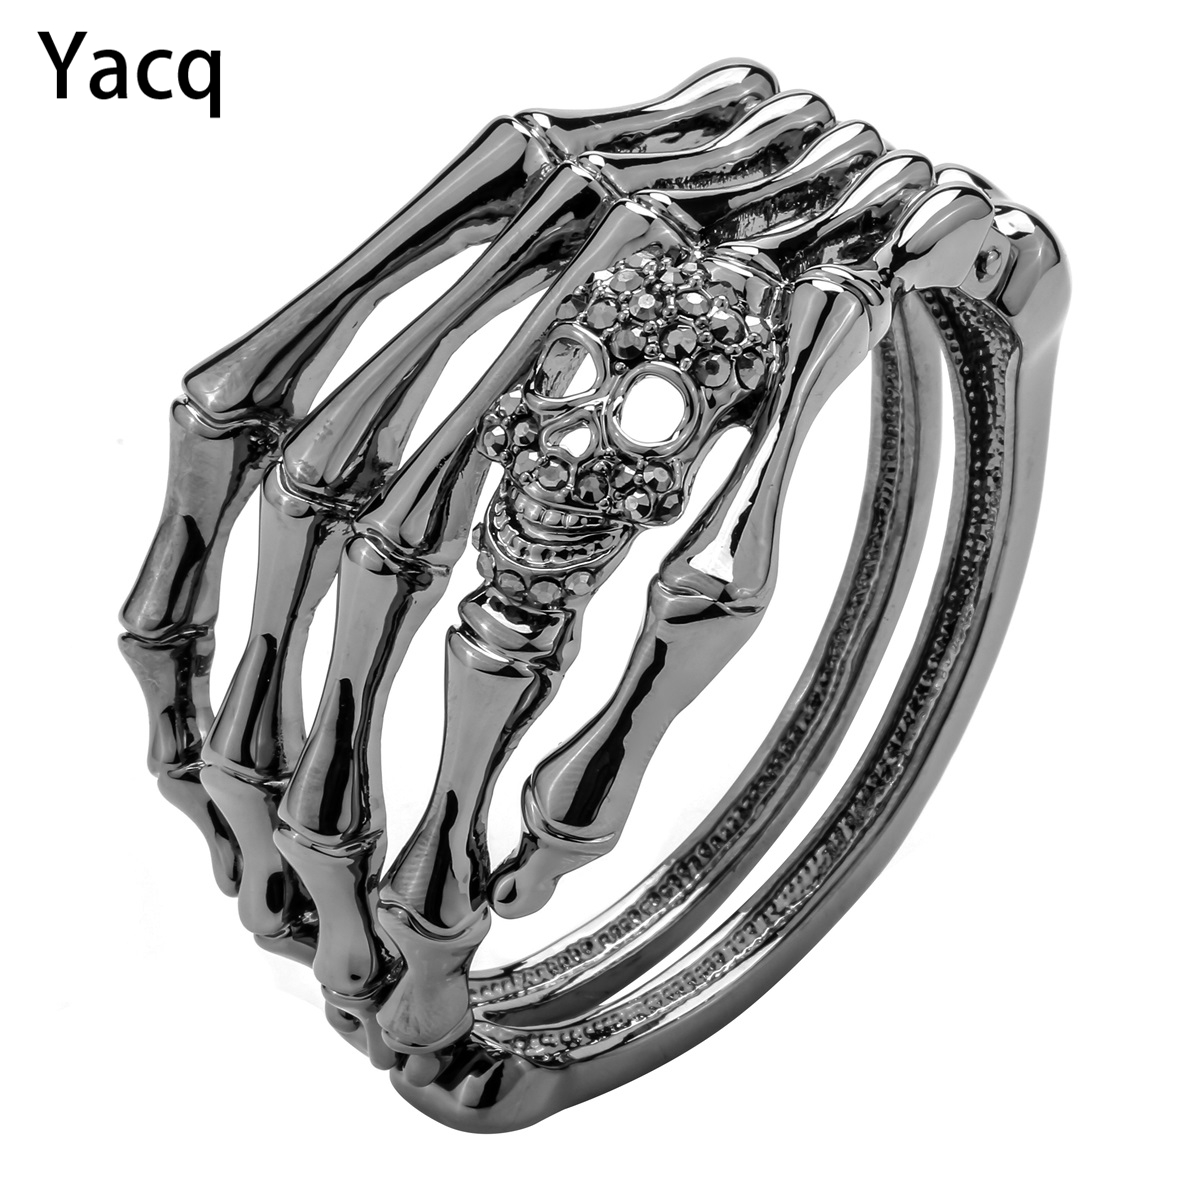 YACQ Skull Skeleton Hand Bracelet Bangle Biker Joyas Góticas Regalos Mujeres Su Novia Color Plata Antiguo D08 Dropshipping